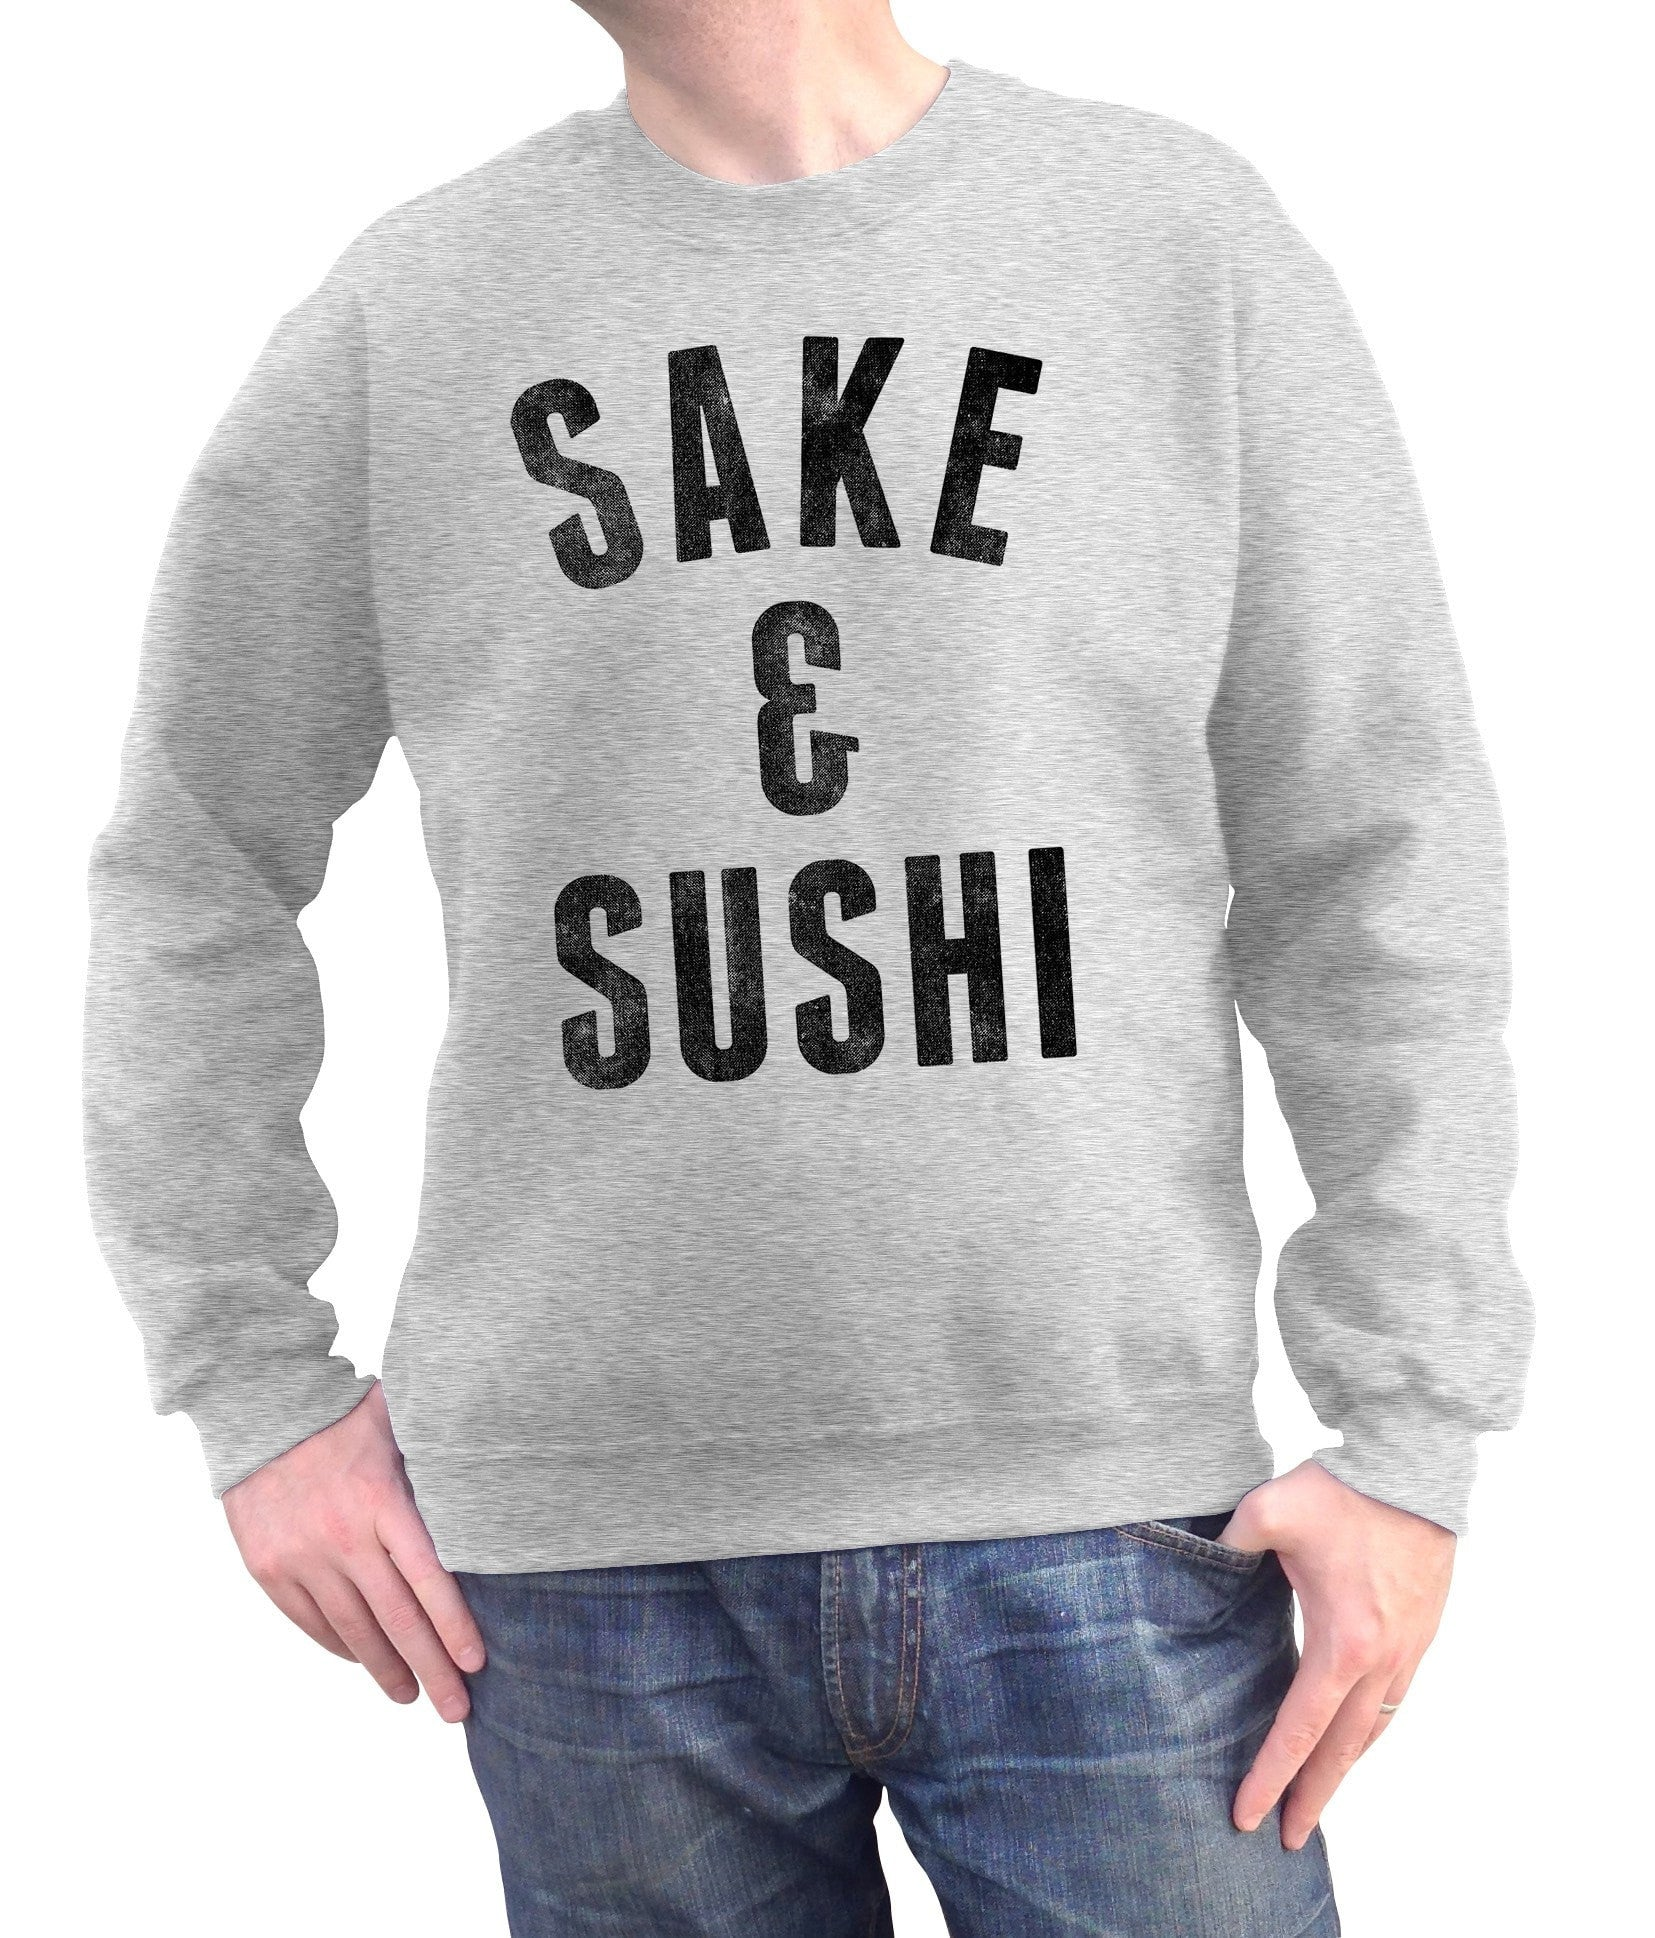 Unisex Sake and Sushi Sweatshirt